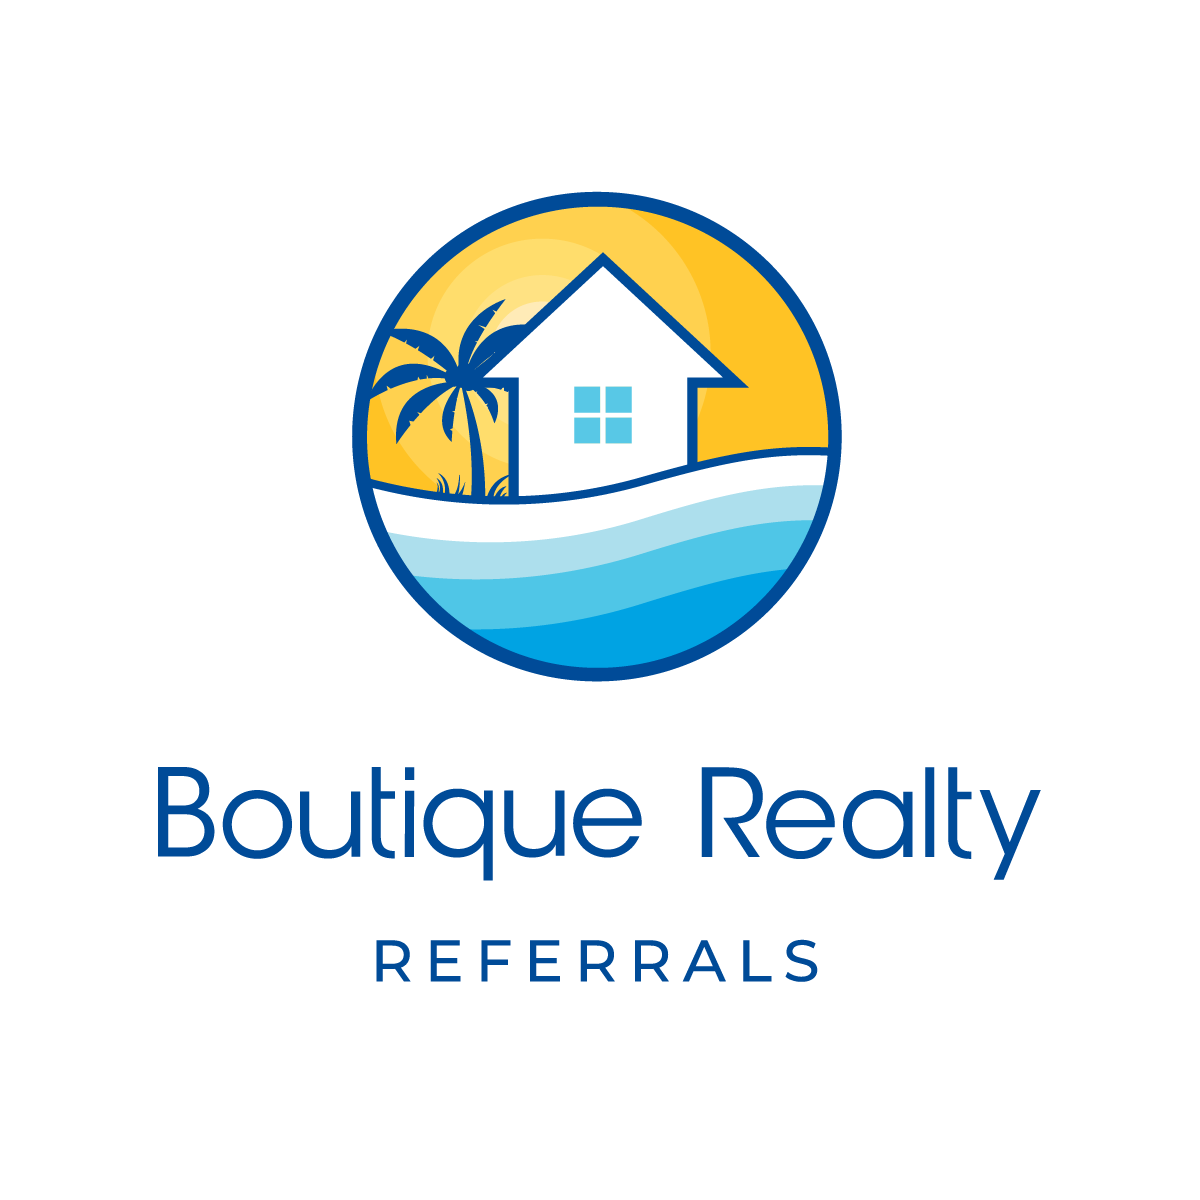 BoutiqueRealty_Referrals_Web.png